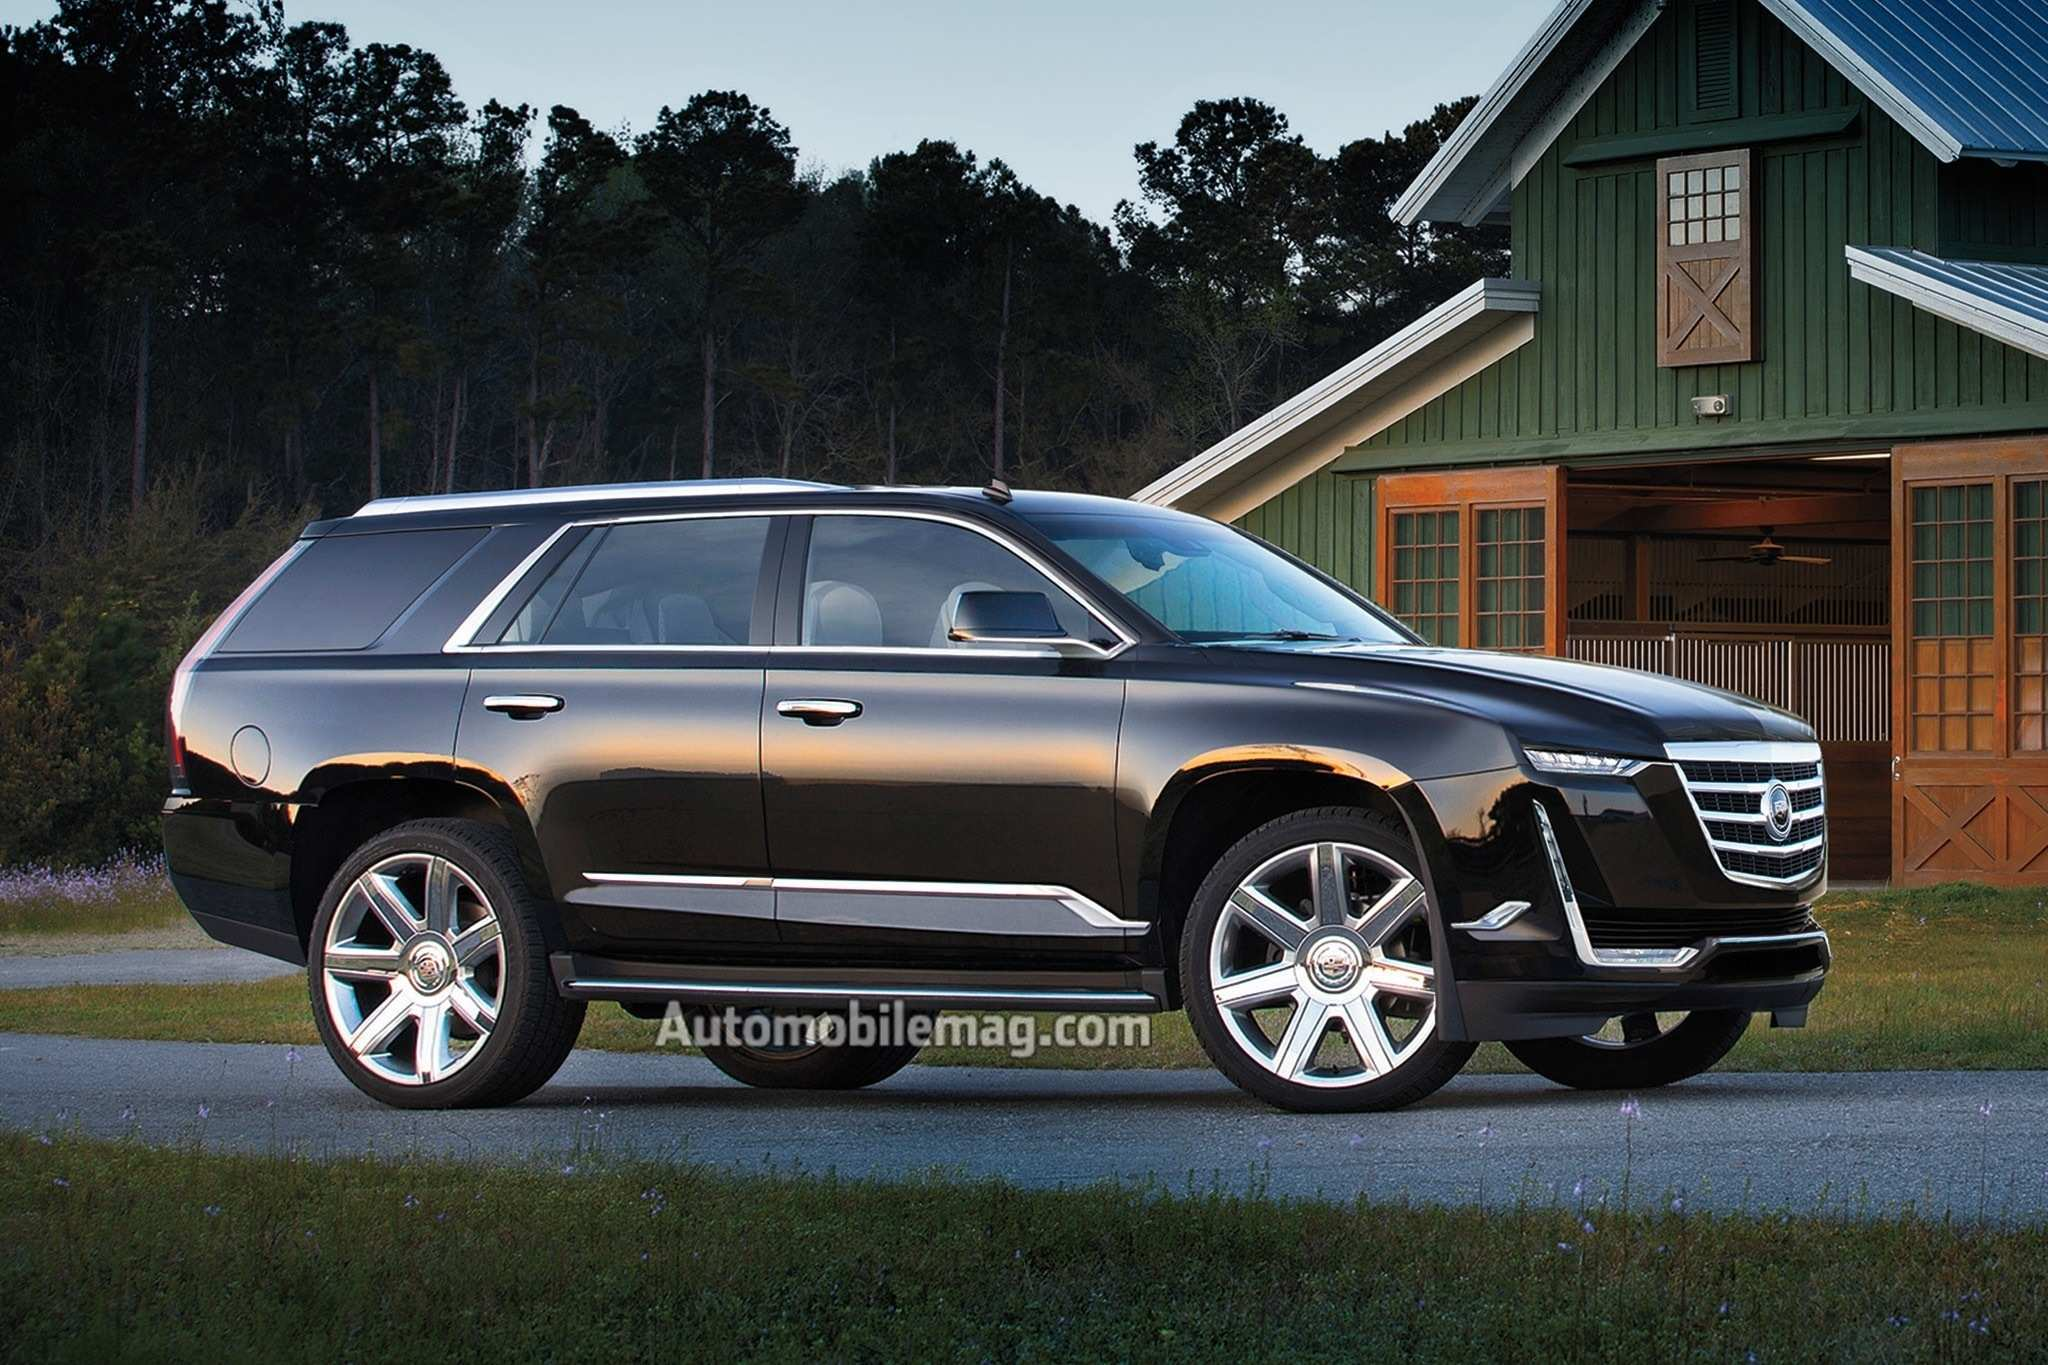 54 All New 2019 Cadillac Srx Price Review And Release Date